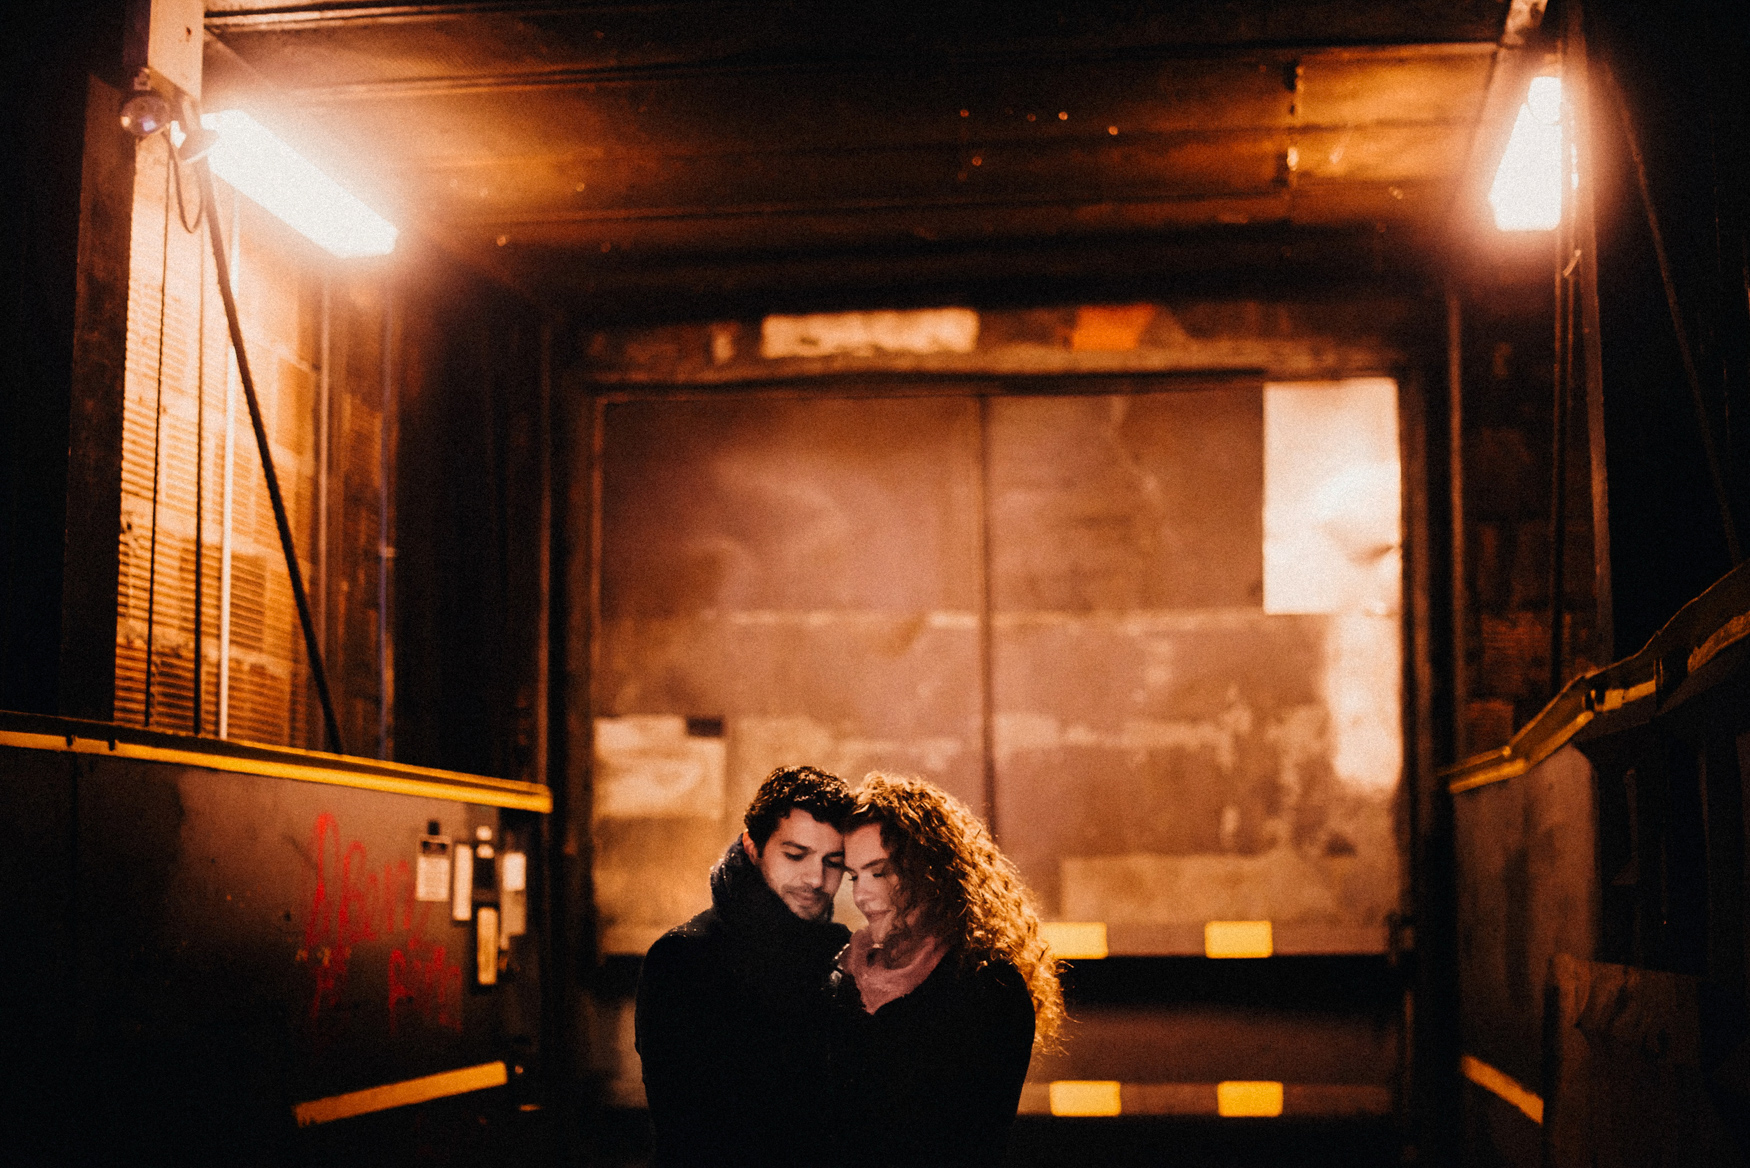 nyc winter snowy manthattan engagement session 028.jpg